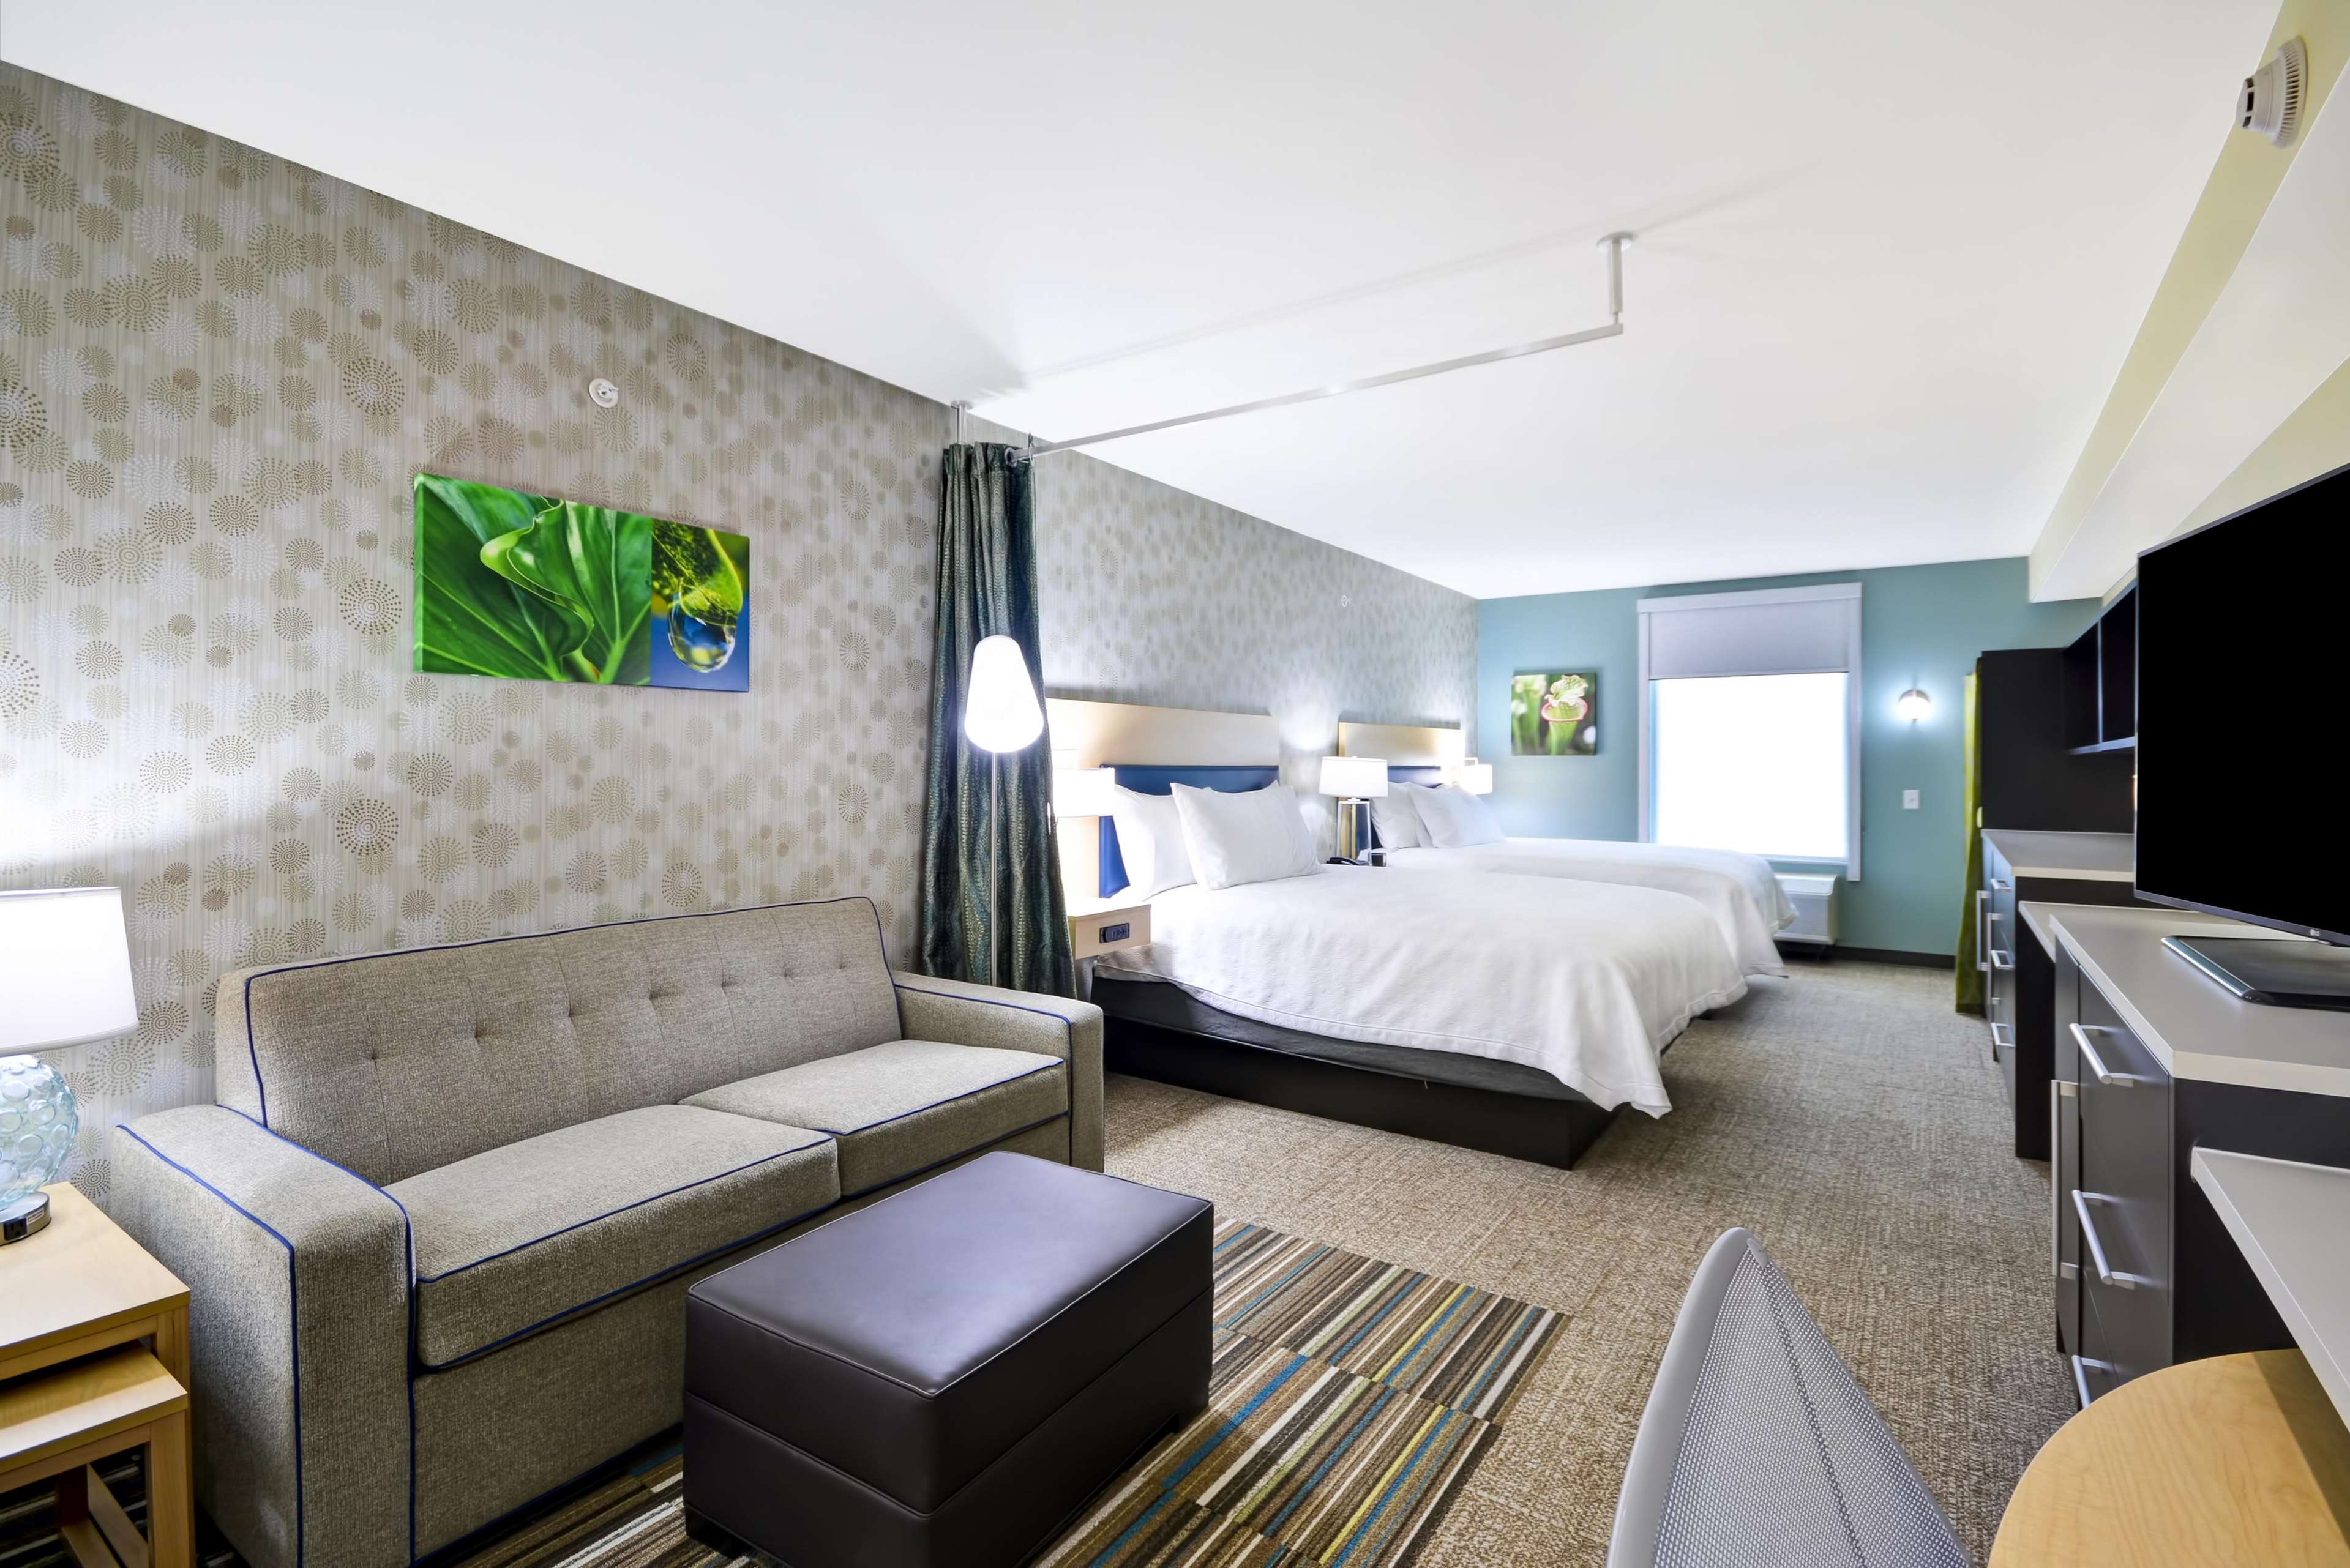 Home2 Suites By Hilton Maumee Toledo image 0